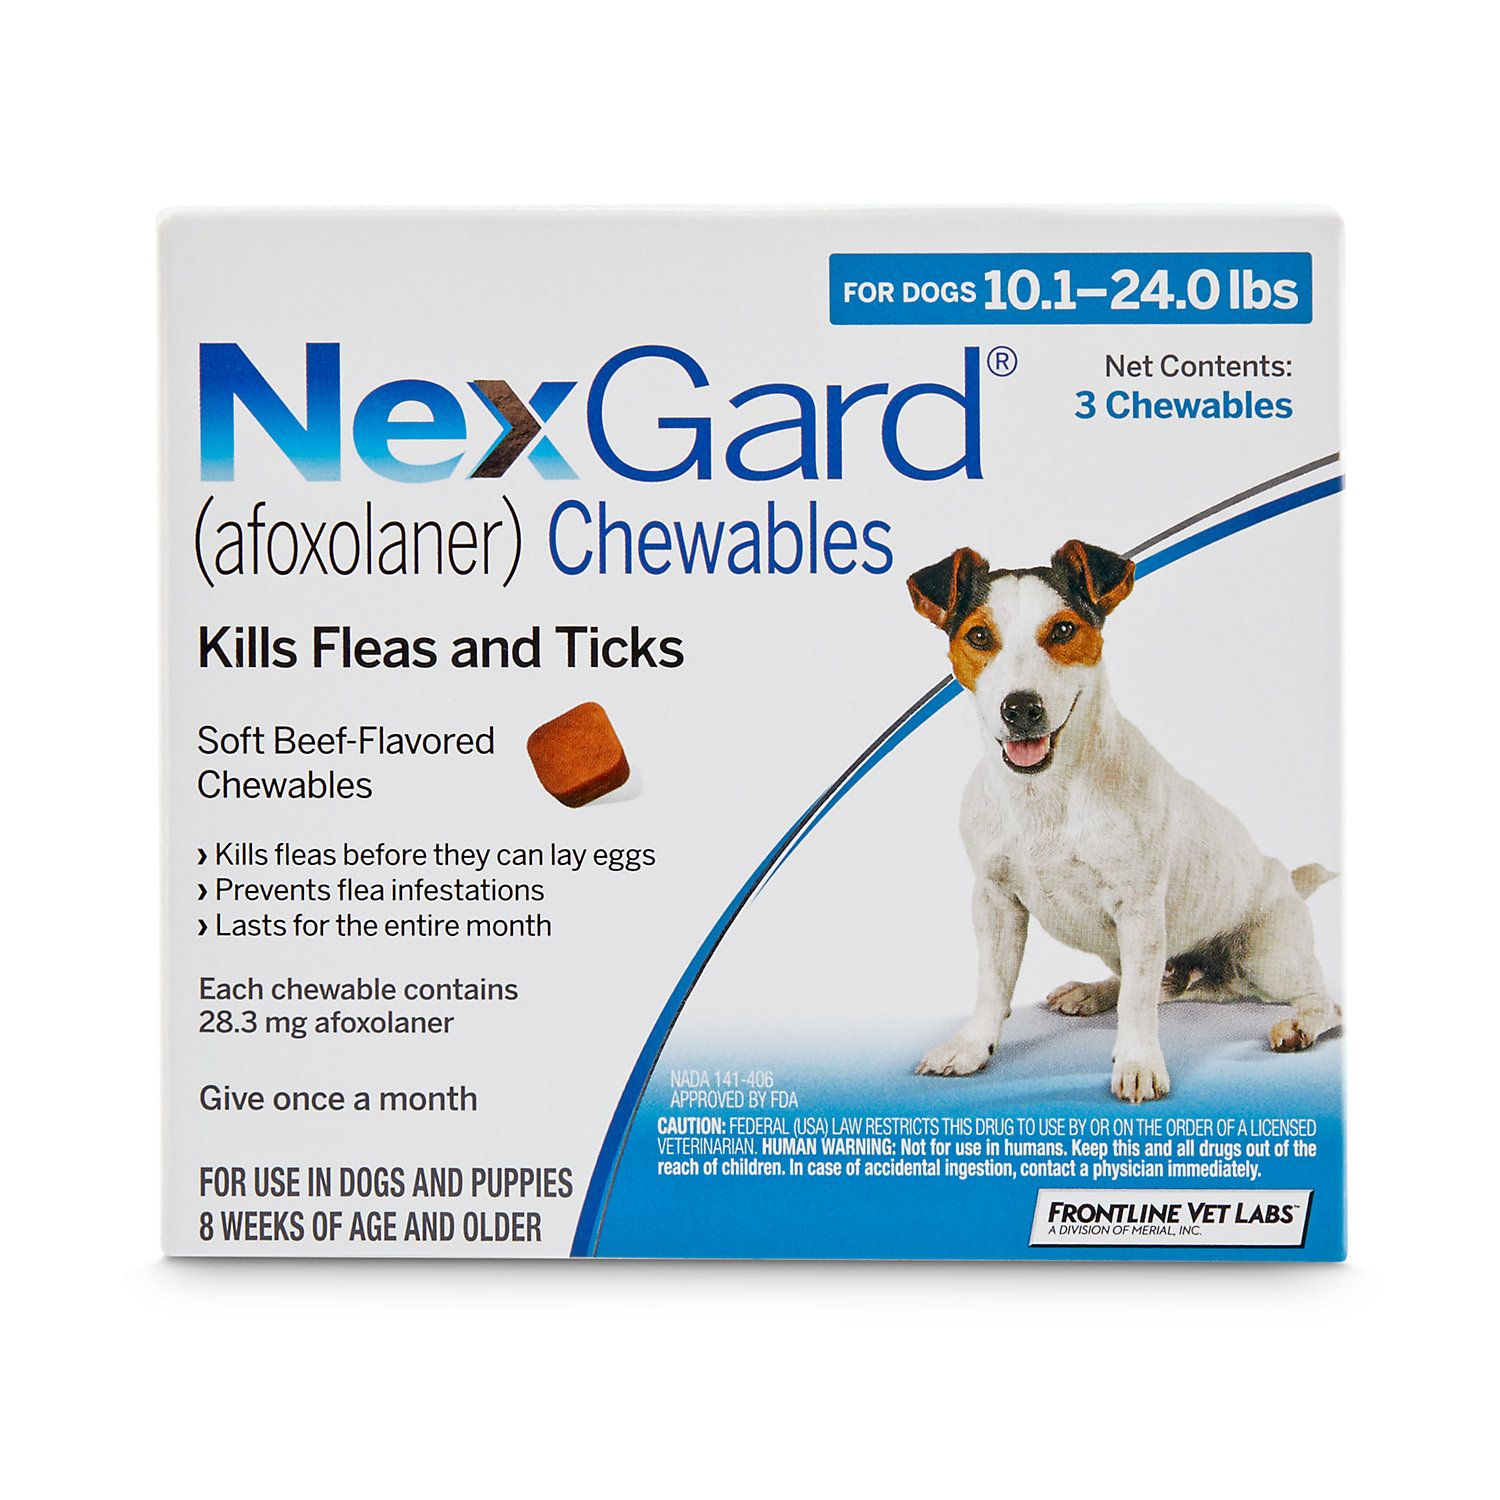 Nexgard Chewables Blue For Dogs 10 1 To 24 Lbs 3 Pack In 2019 Fleas Flea Tick Ticks